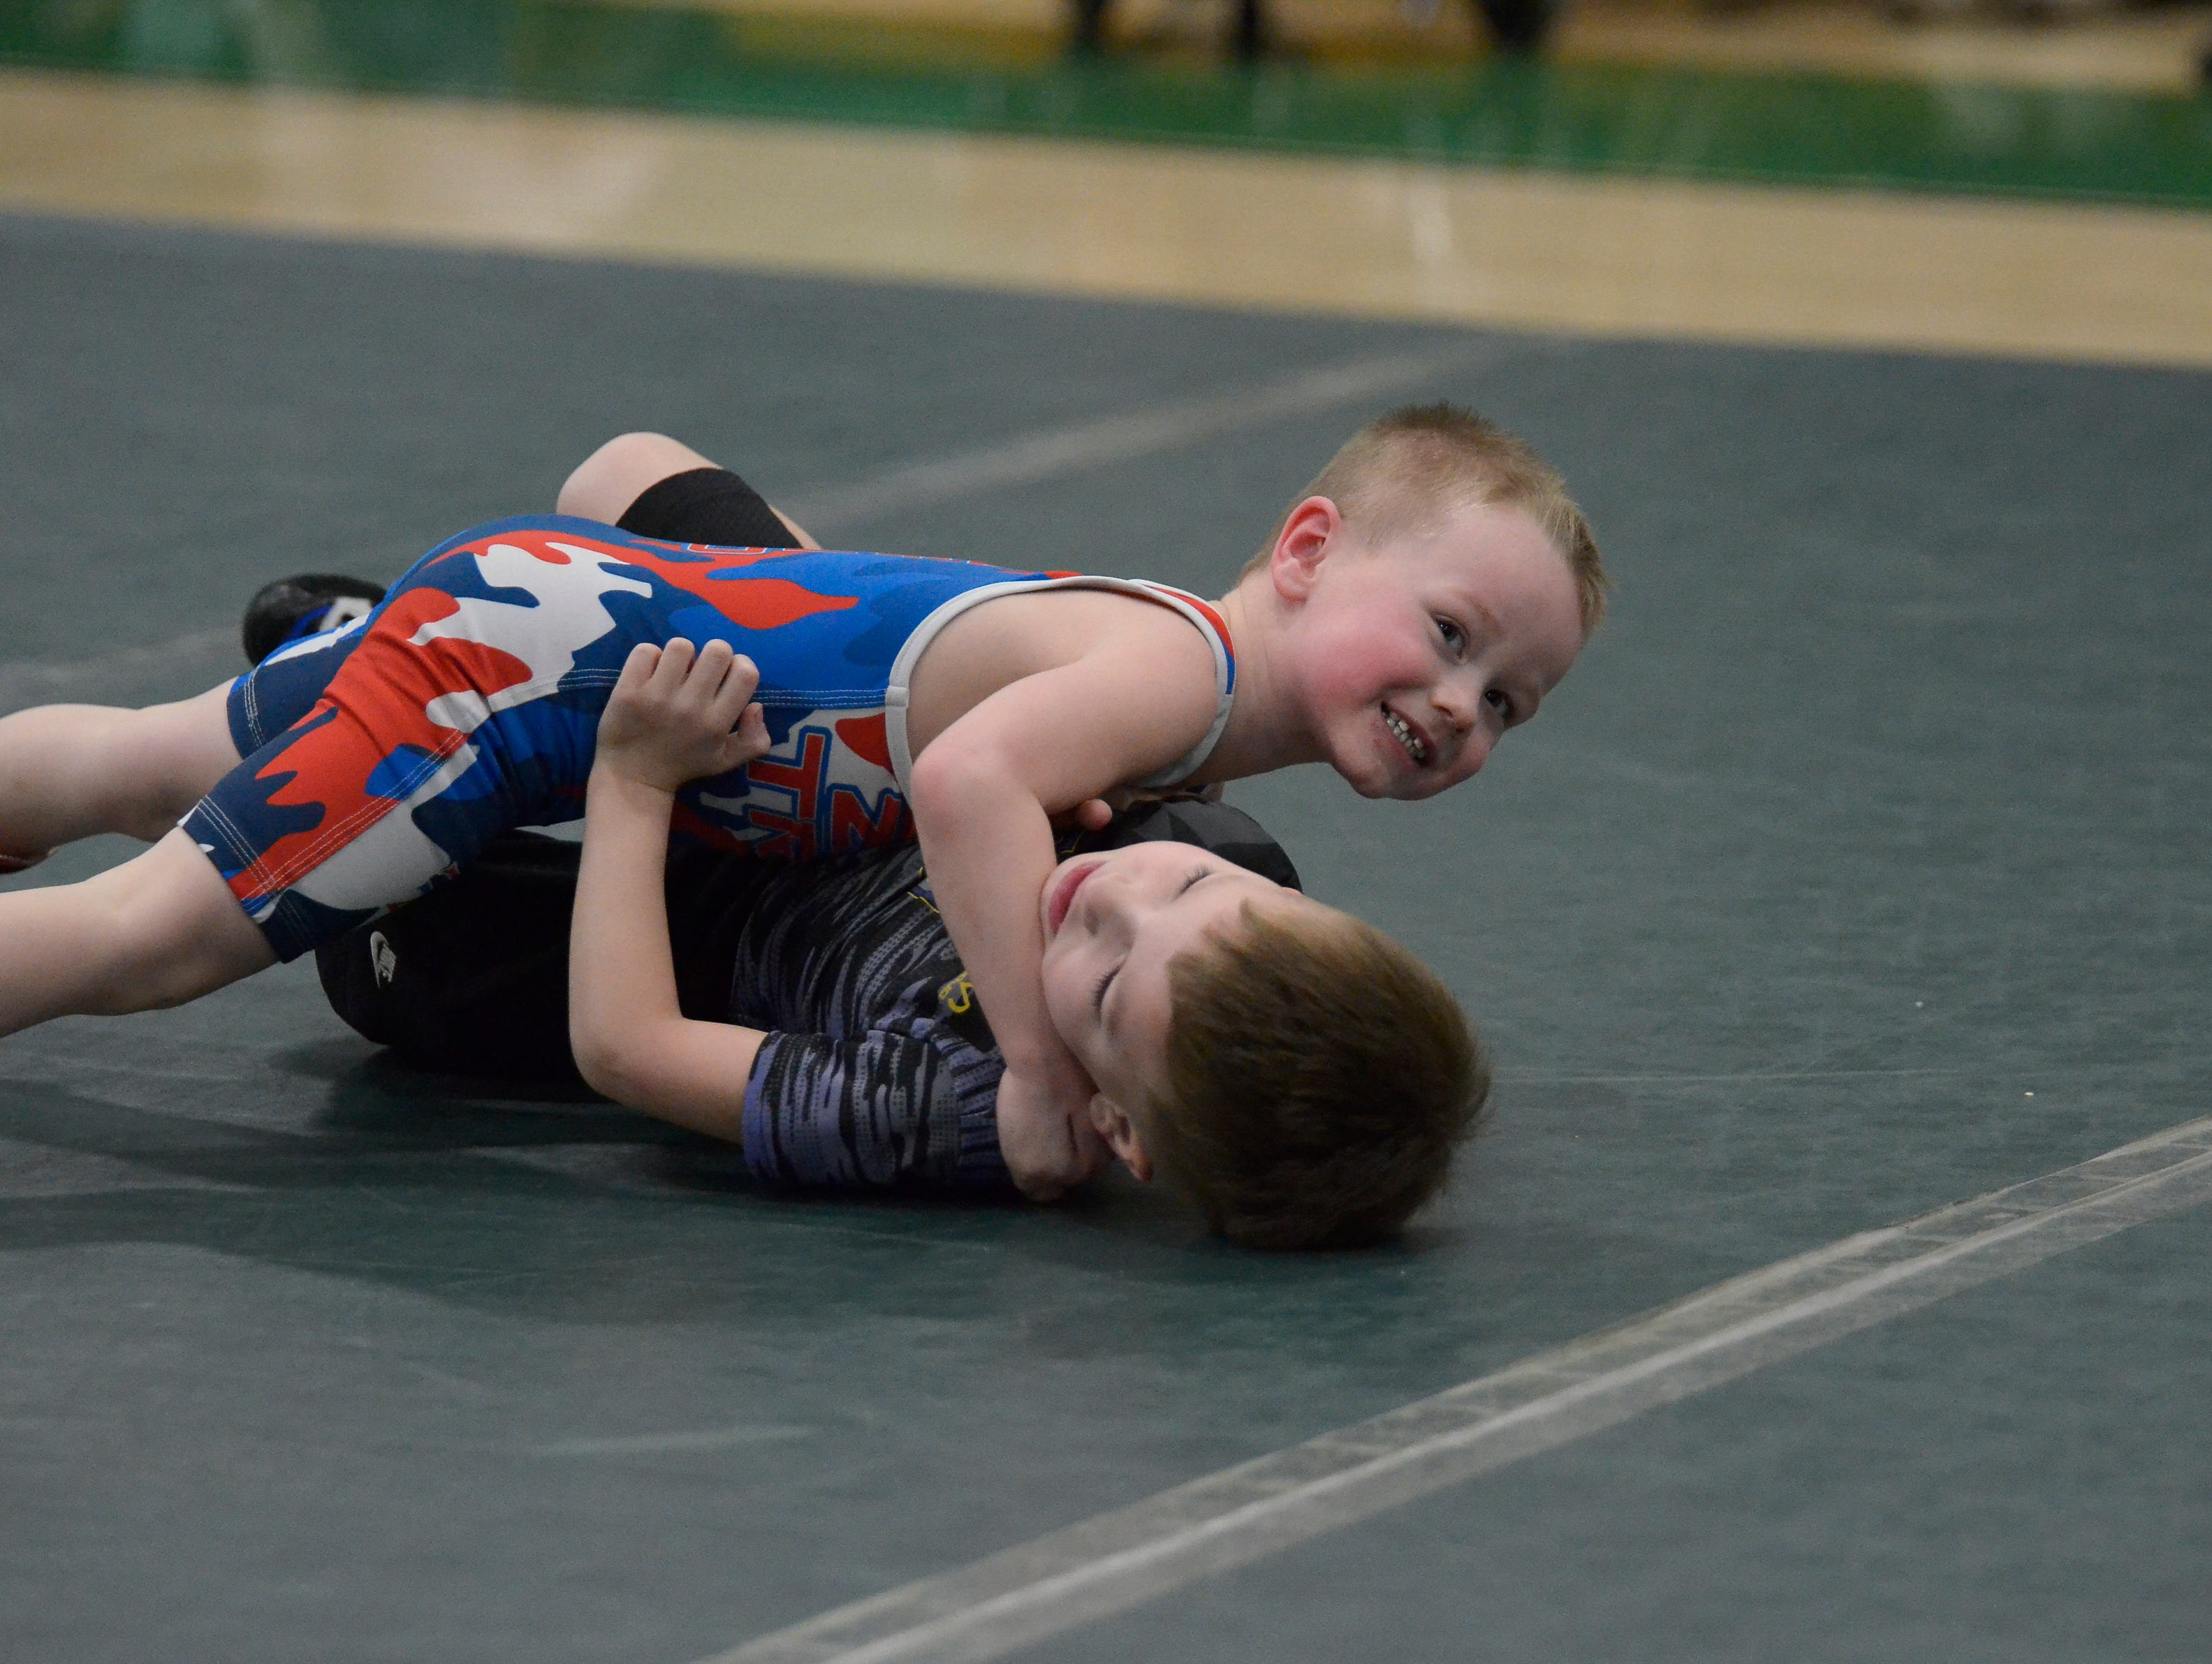 """Huntington High School's annual """"Unleash The Beast Youth Wrestling Tournament"""" was held on Friday, Feb. 8, 2019, with over one-hundred young wrestlers from Adena, Unioto, Zane Trace, Greenfield, Miami Trace, Amanda Clearcreek, FCWC, Hillsboro, Washington Courthouse and Huntington participating."""